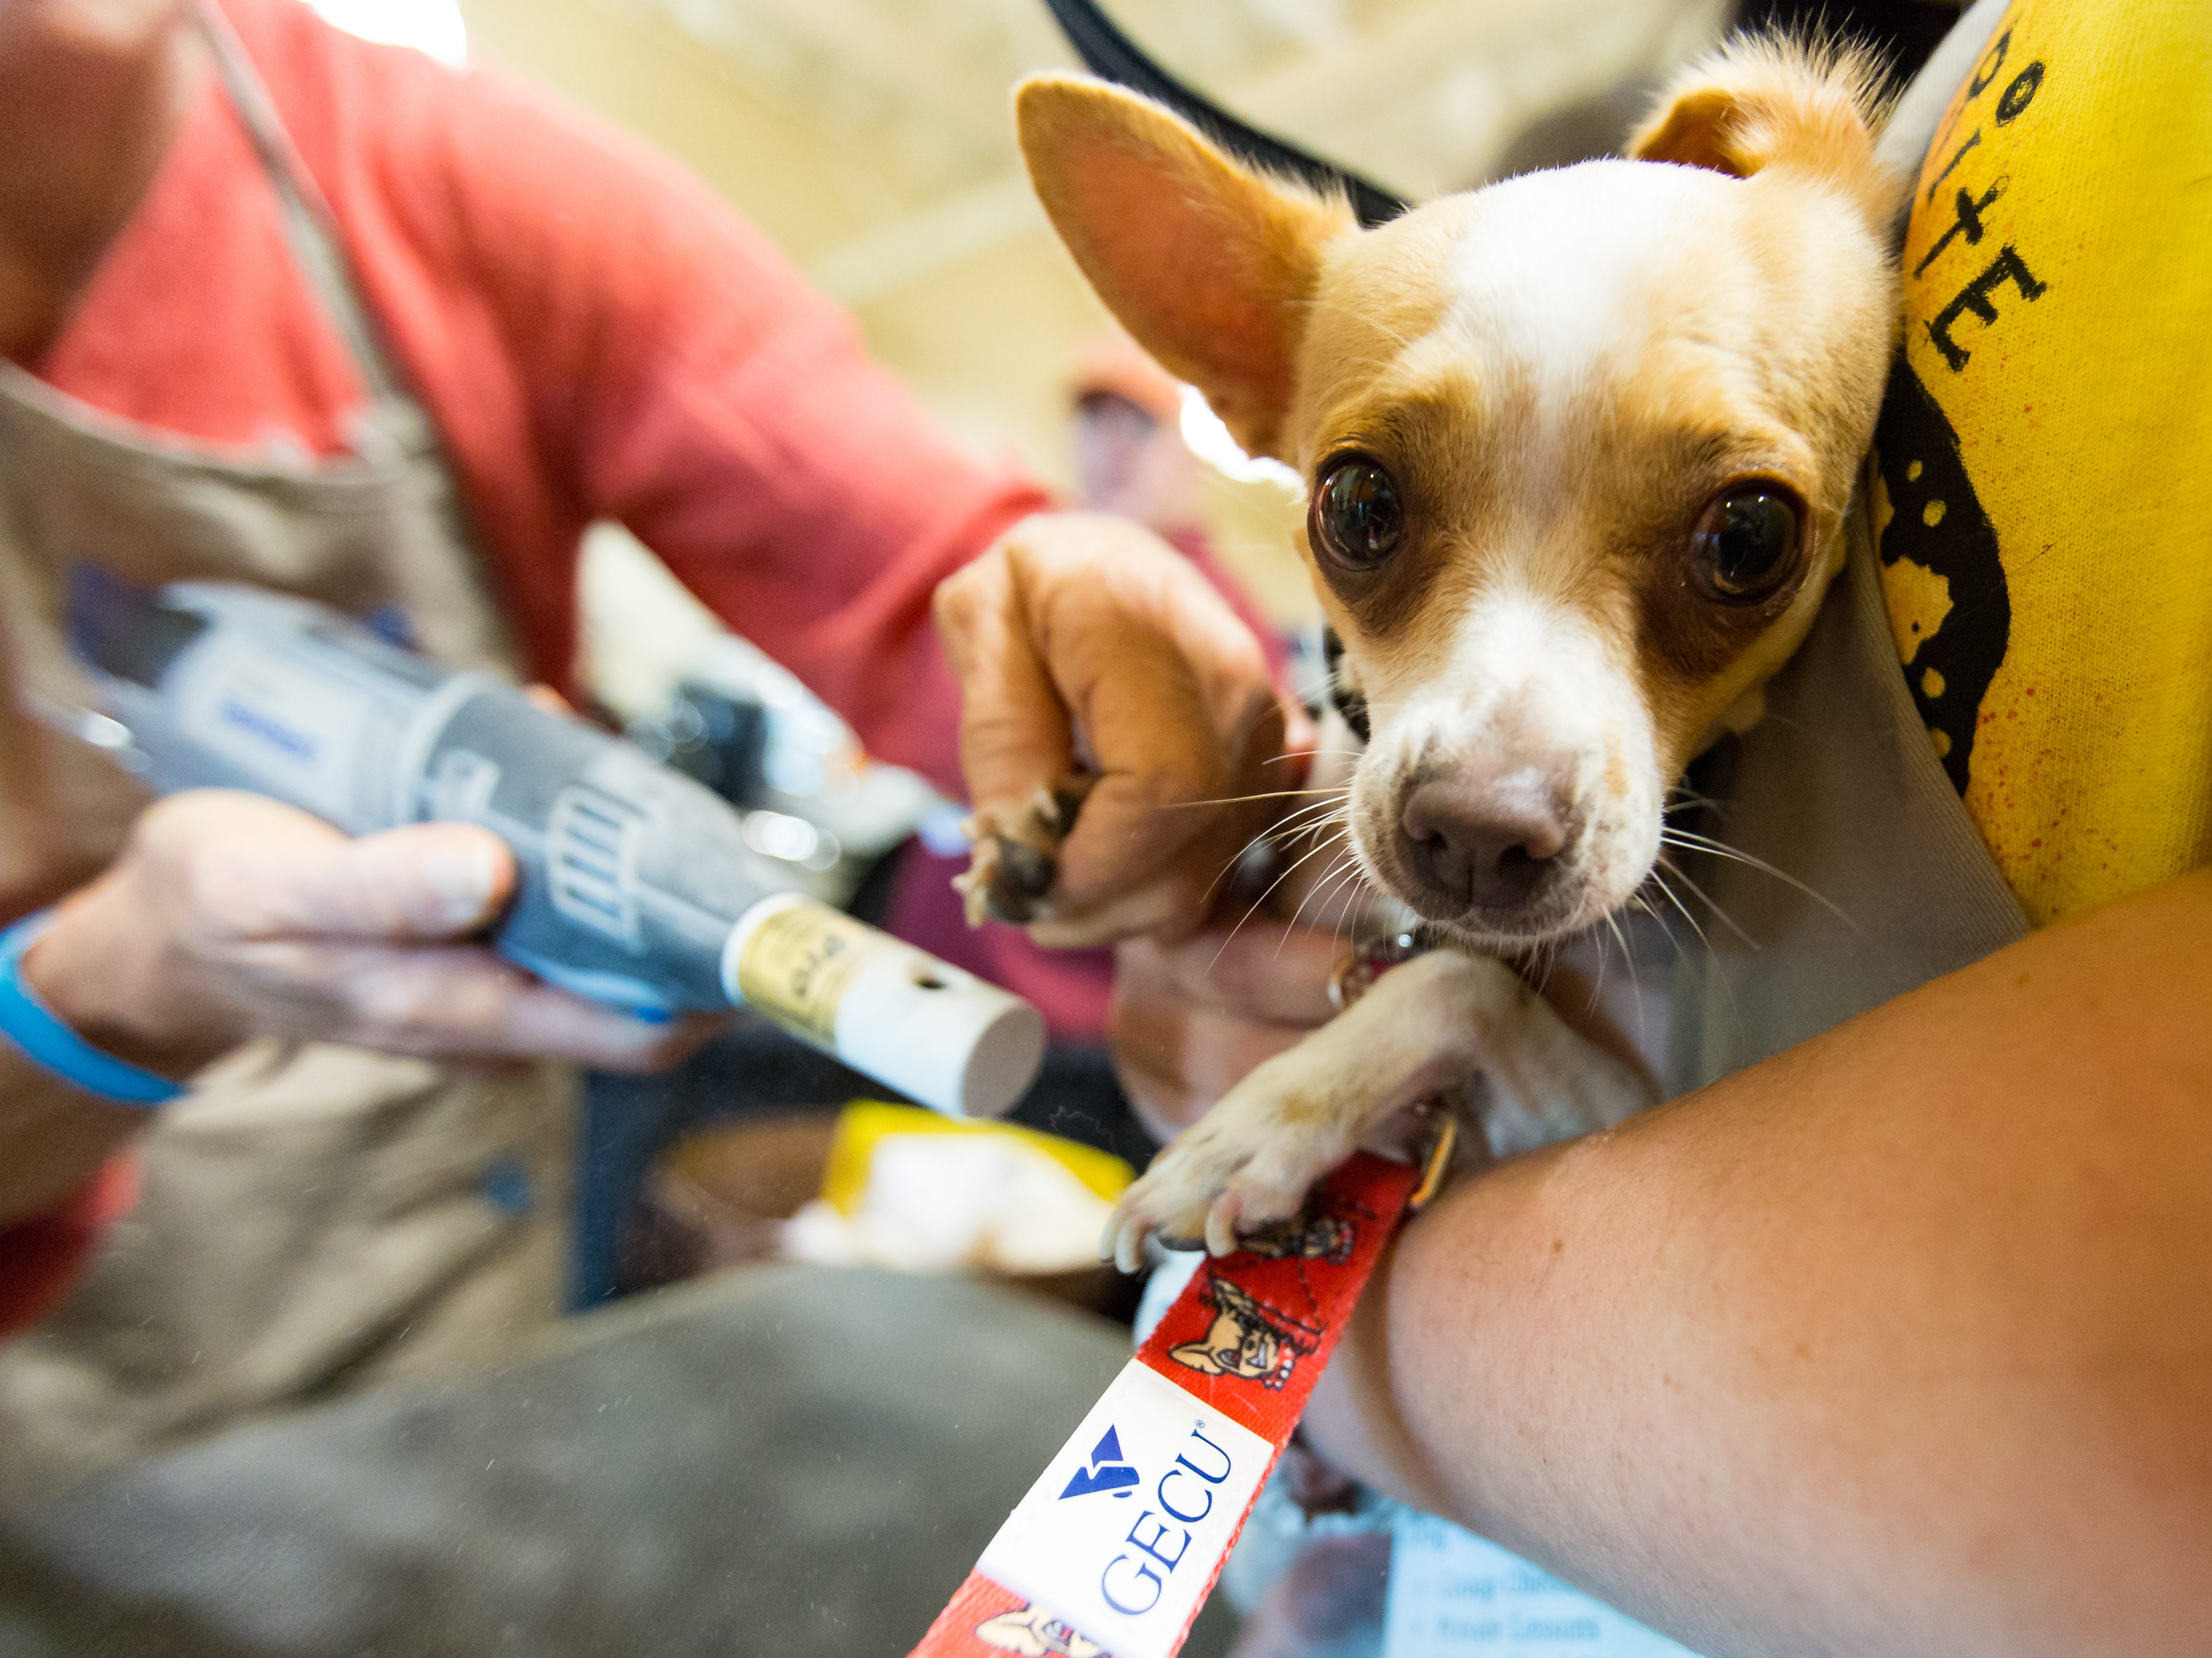 Minnie, 2, has her nails trimmed as her owner Scott Smelser, of El Paso, is near by on Saturday, September 15, 2018, during the 2018 DogCruces Pet Expo at the Las Cruces Convention Center.